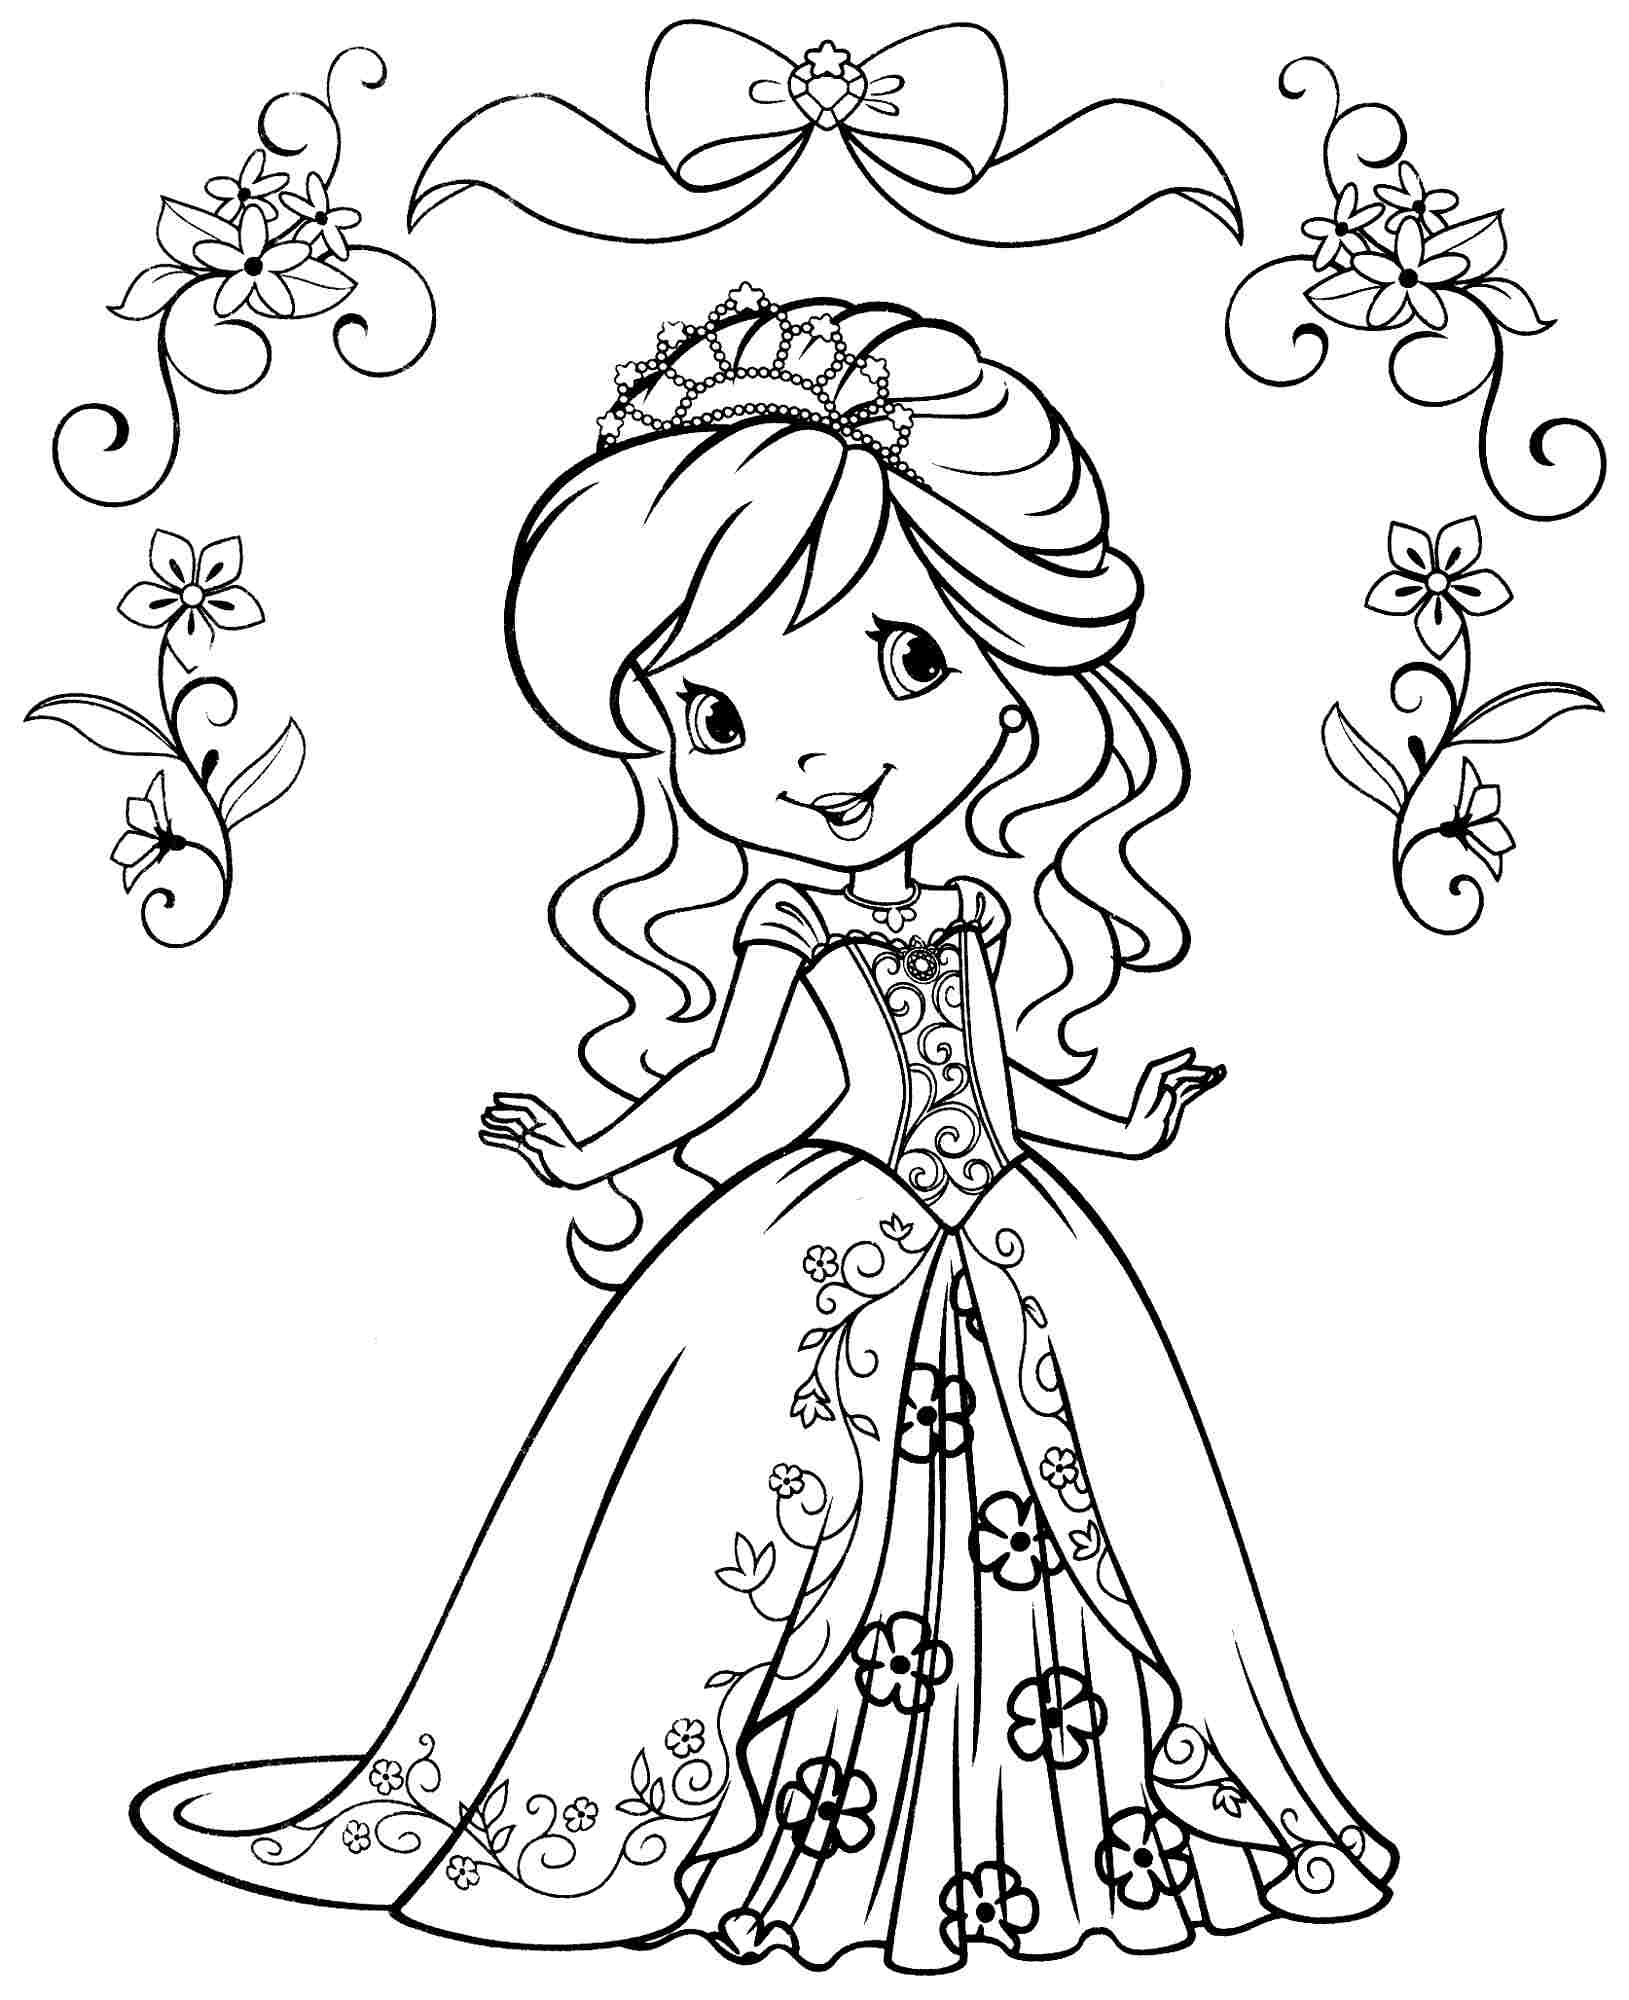 Adult Cute Printable Strawberry Shortcake Coloring Pages Gallery Images top strawberry shortcake coloring page valentine pages images